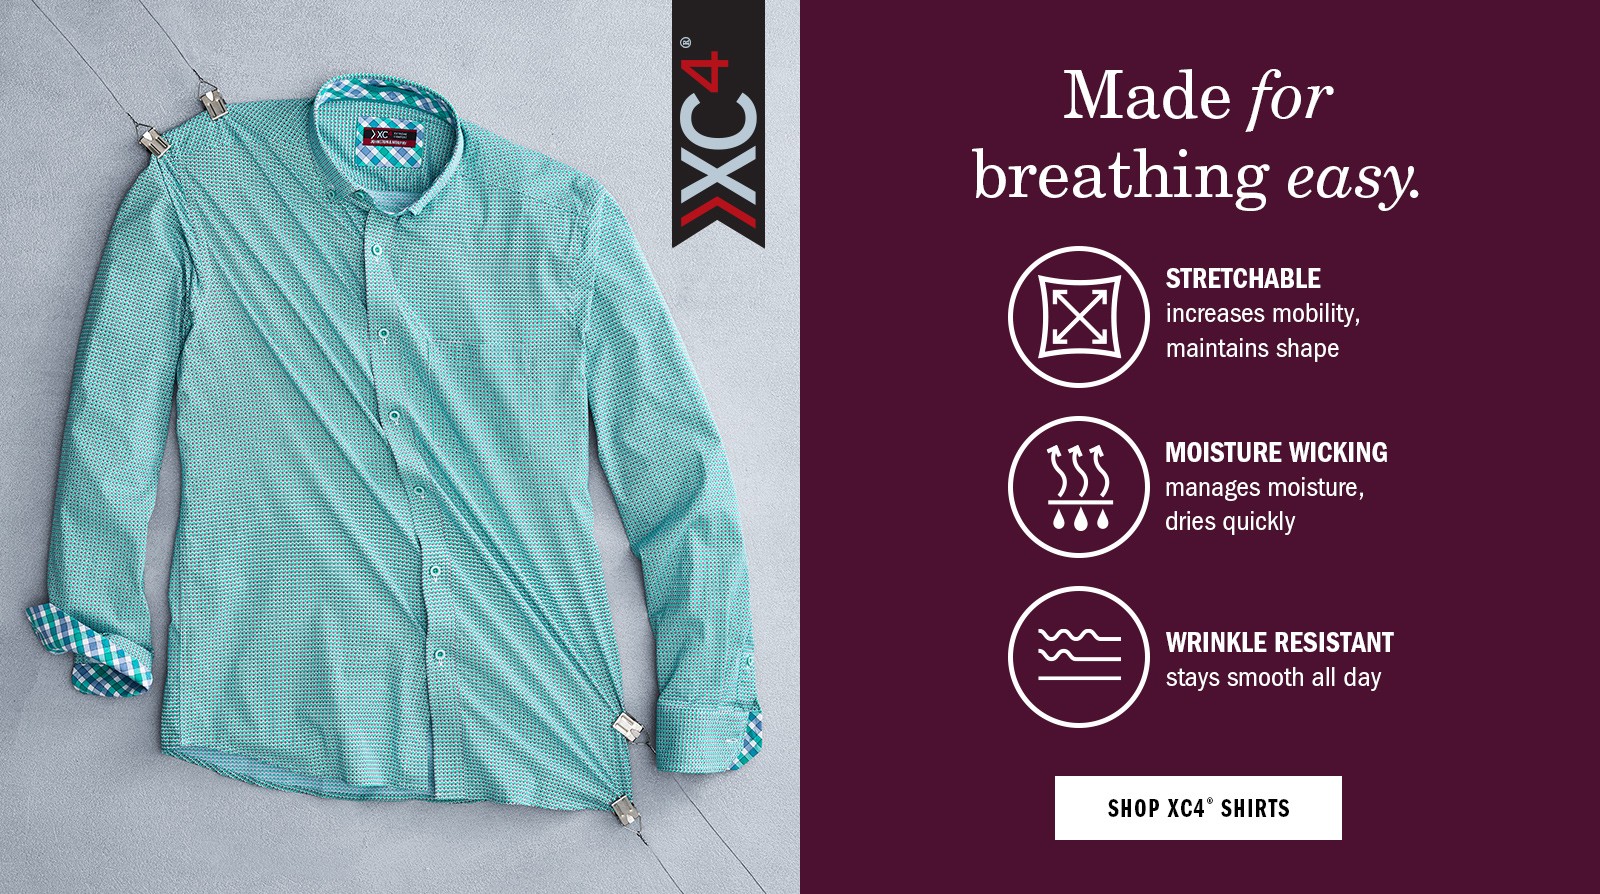 Made for Breathing Easy - Shop Men's XC4 Shirts